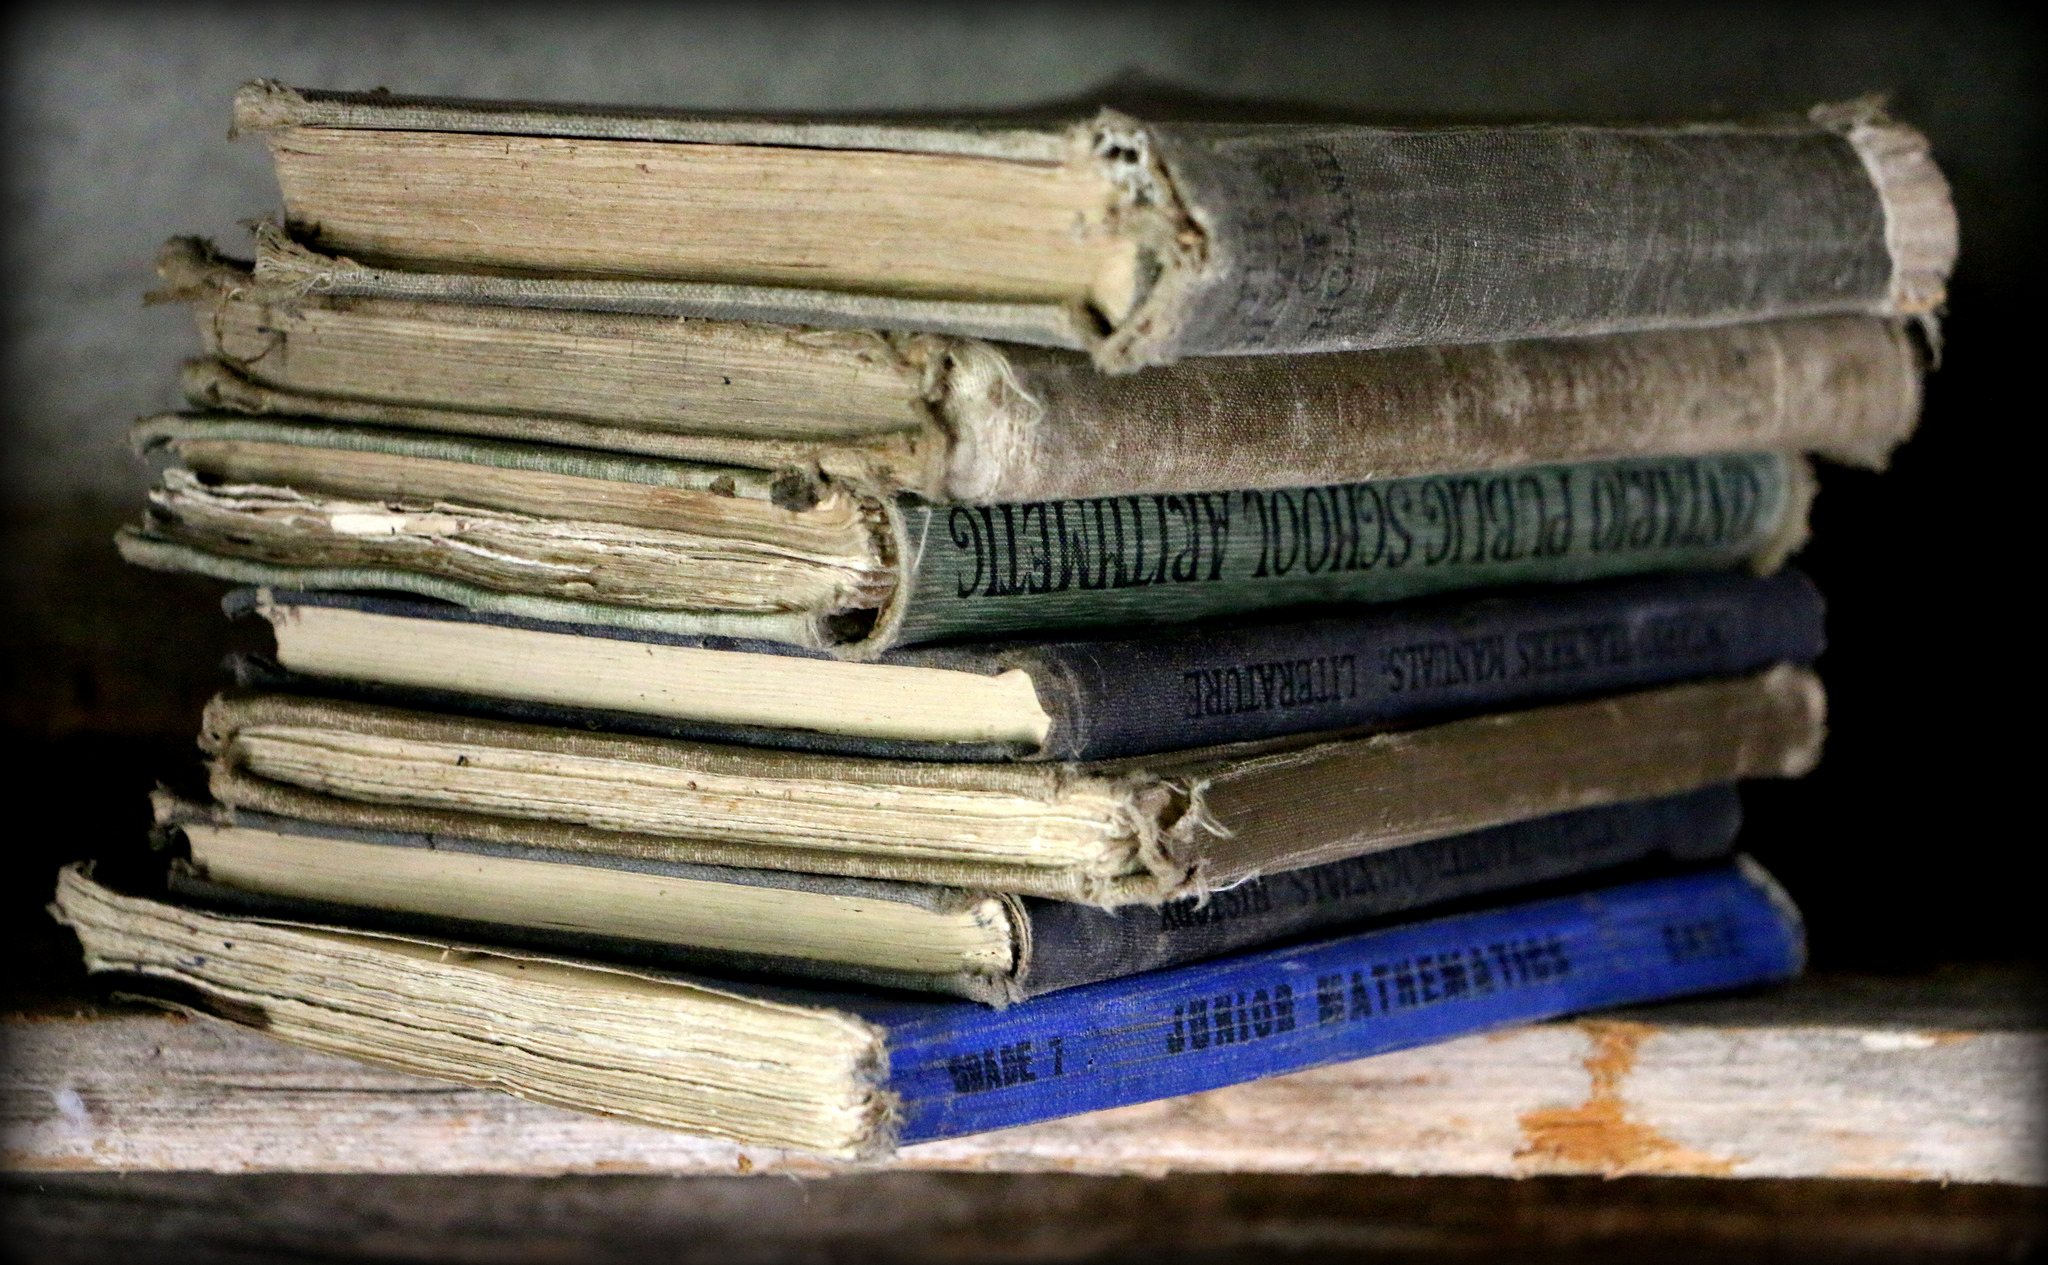 Old School textbooks by Rina Pitucci